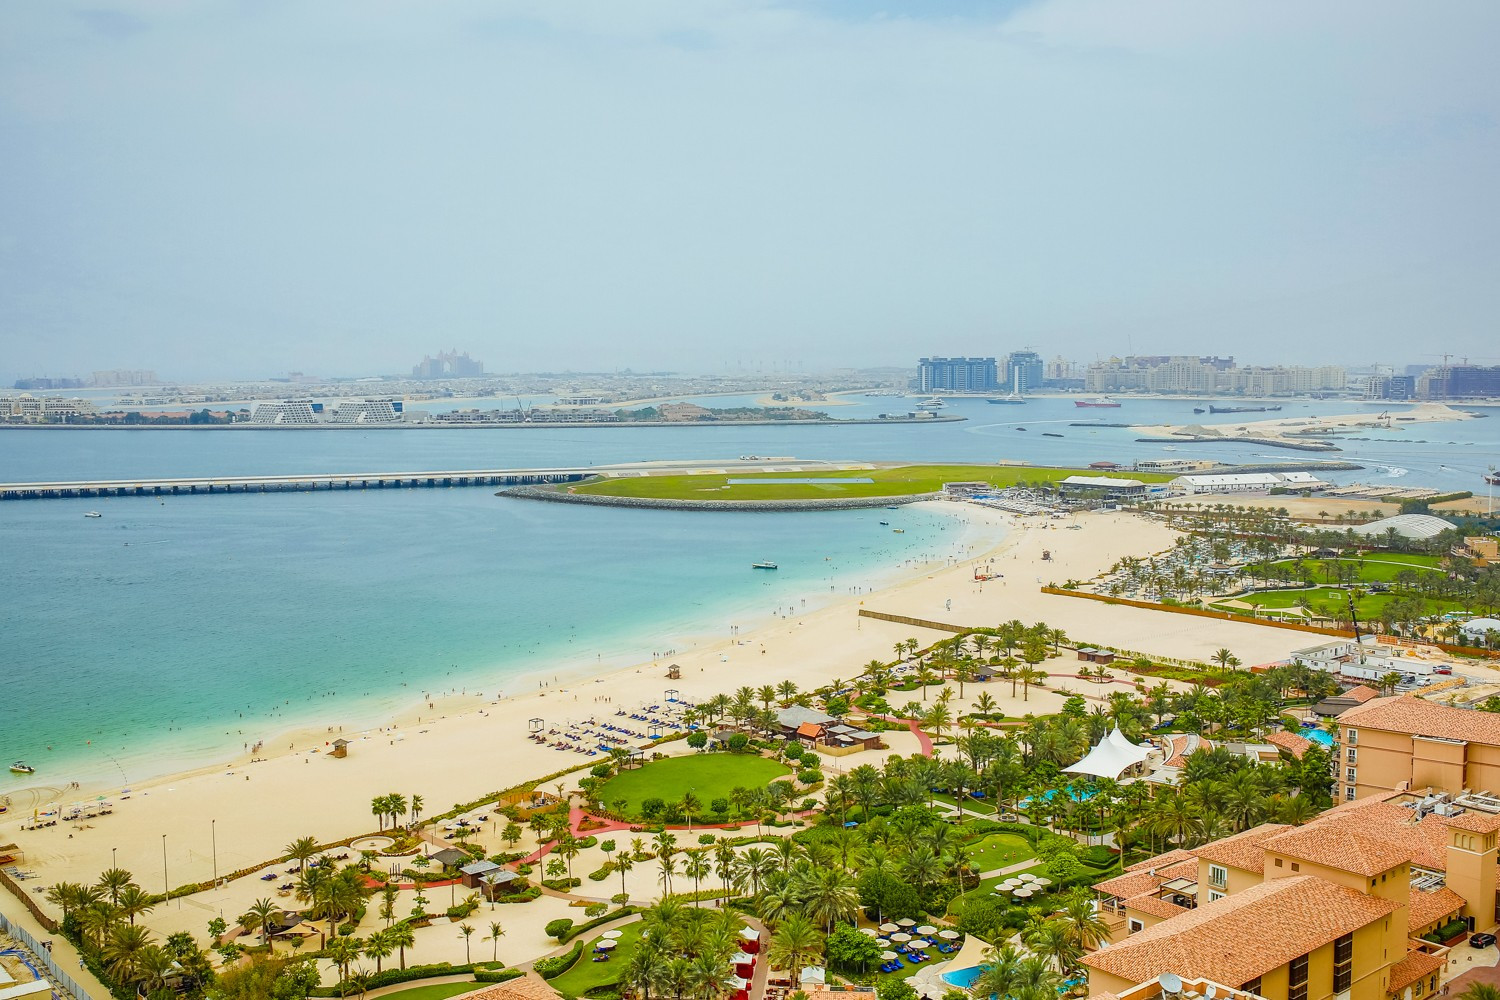 Monthly rental on JBR in Dubai - Apartments in Dubai